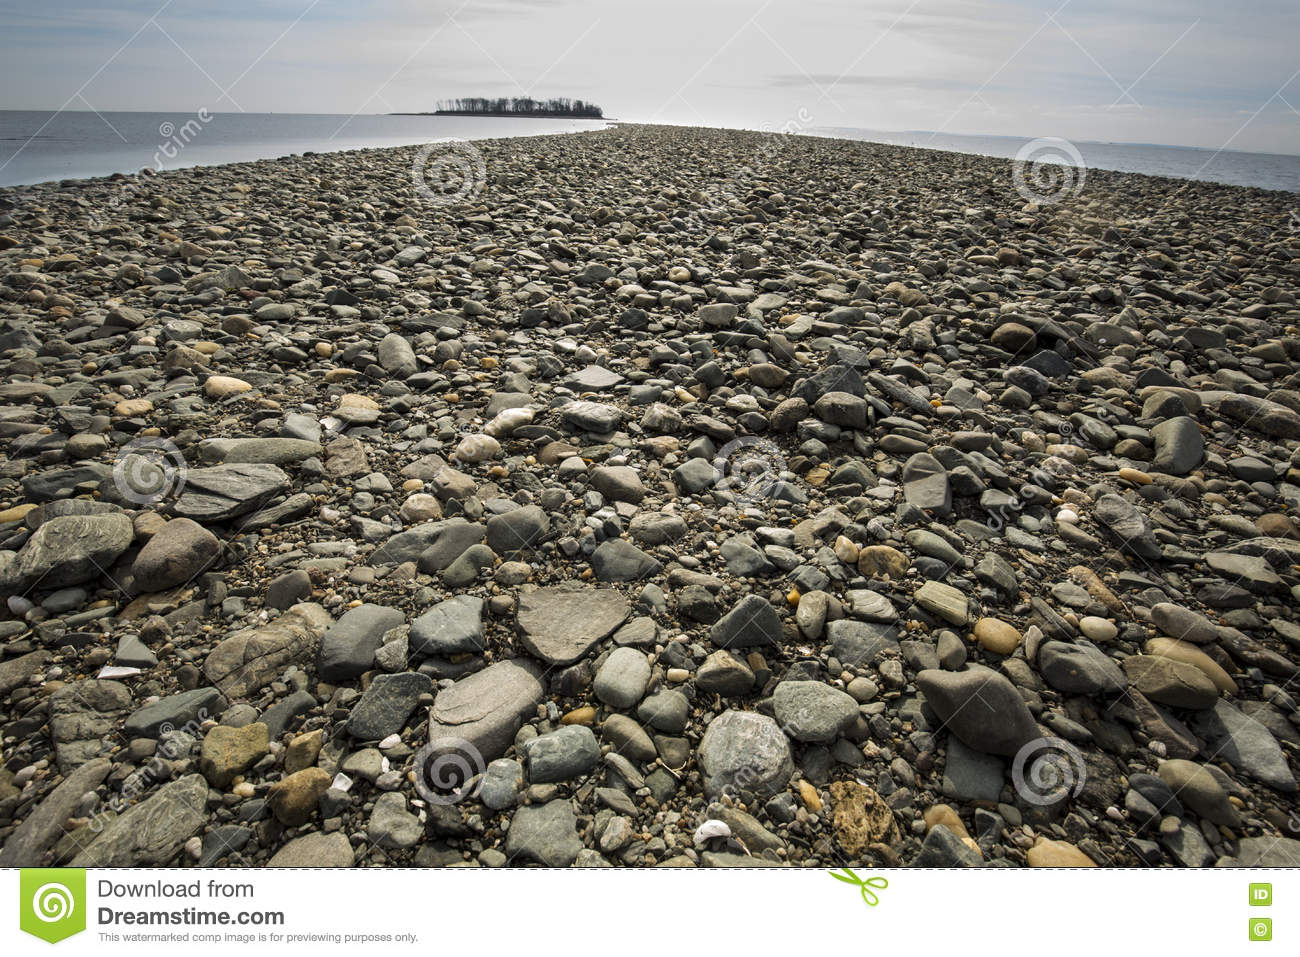 Tombolo of gravel at Silver Sands beach, Milford, Connecticut.